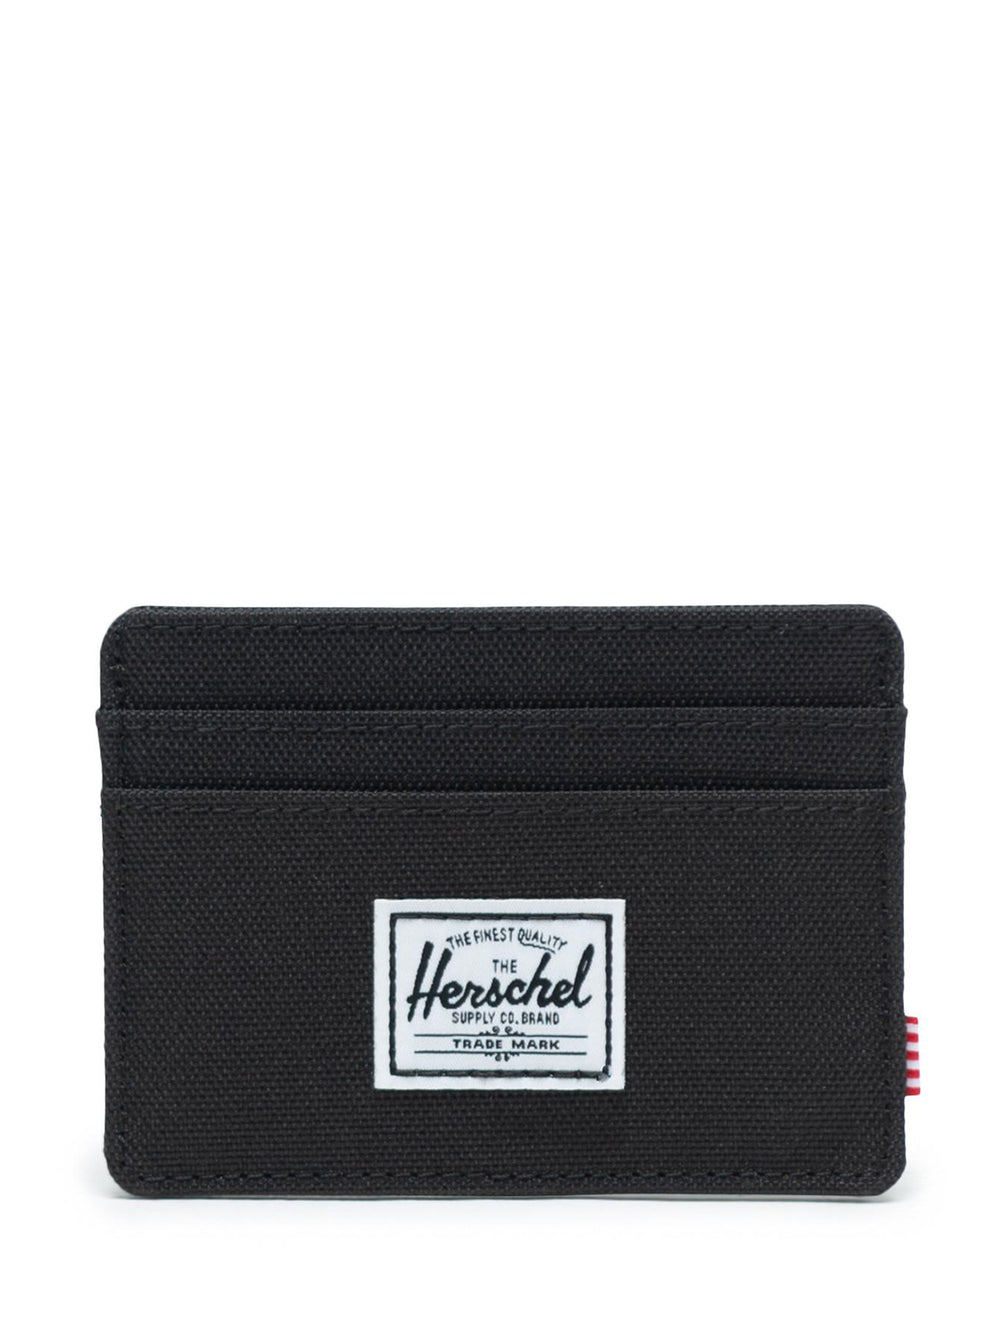 CHARLIE CARD WALLET - BLACK